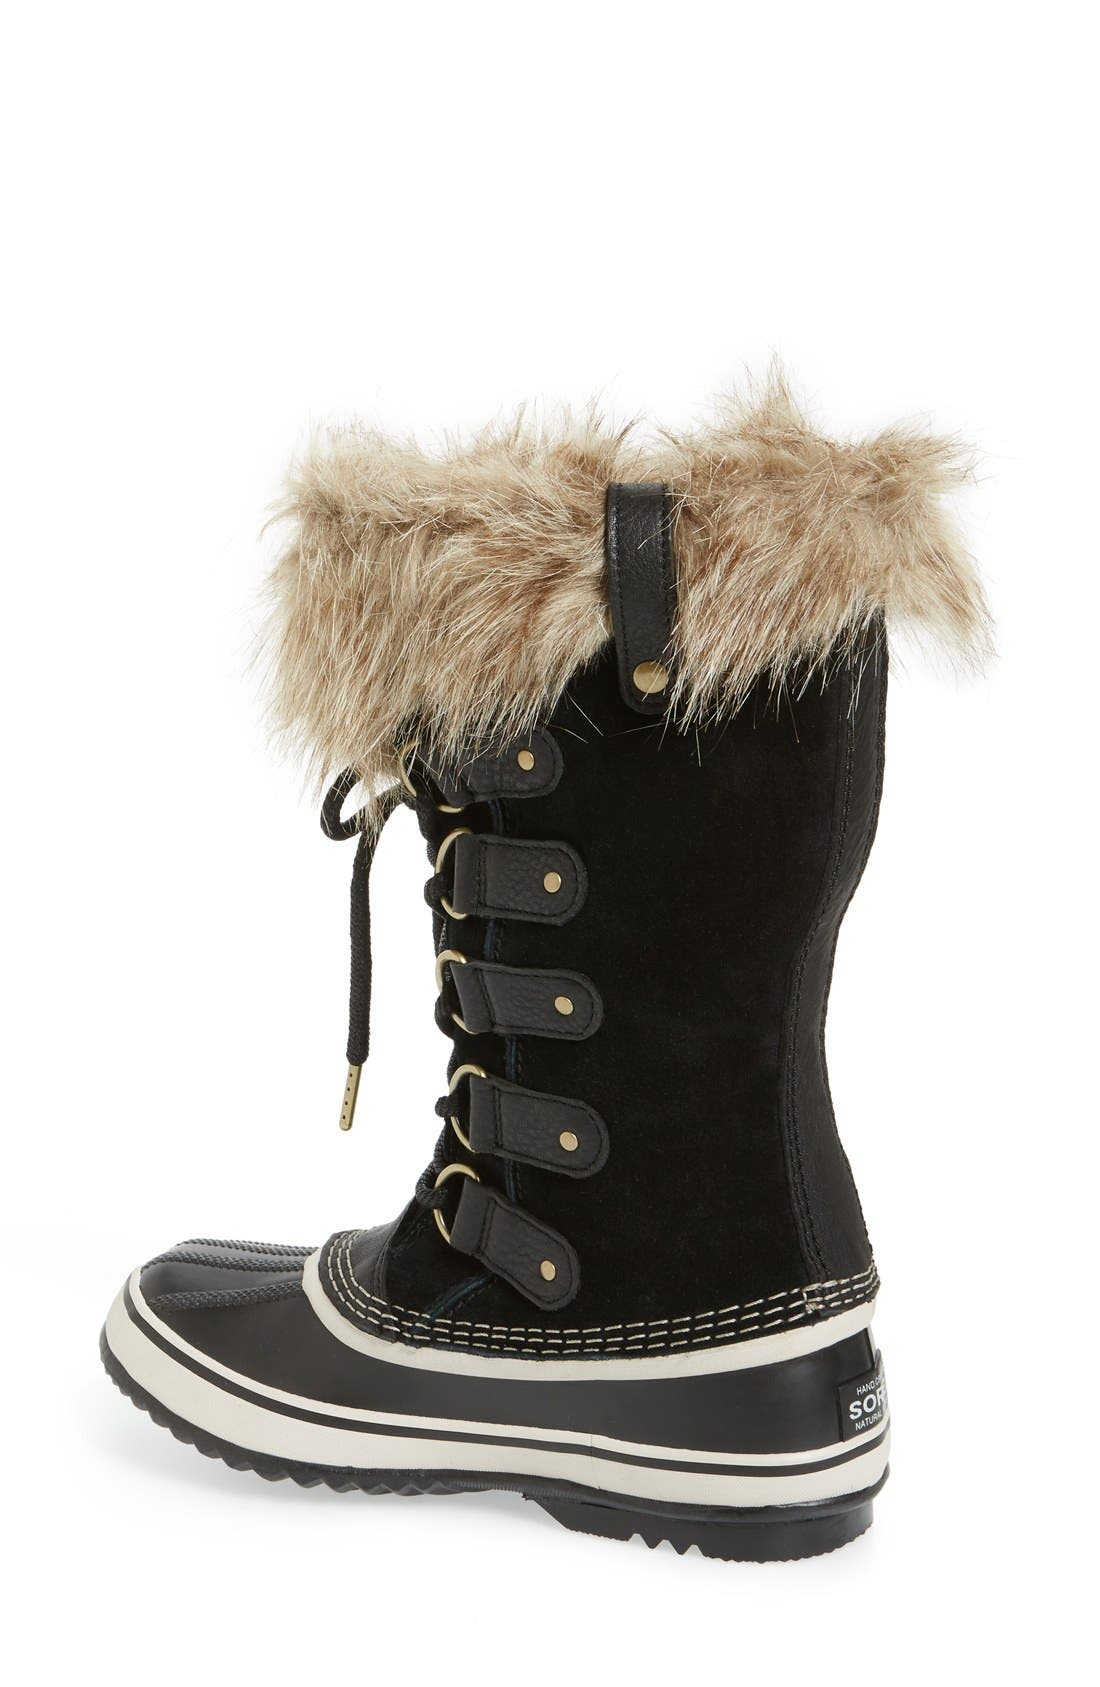 'Joan of Arctic' Waterproof Snow Boot,                             Alternate thumbnail 2, color,                             BLACK/ STONE